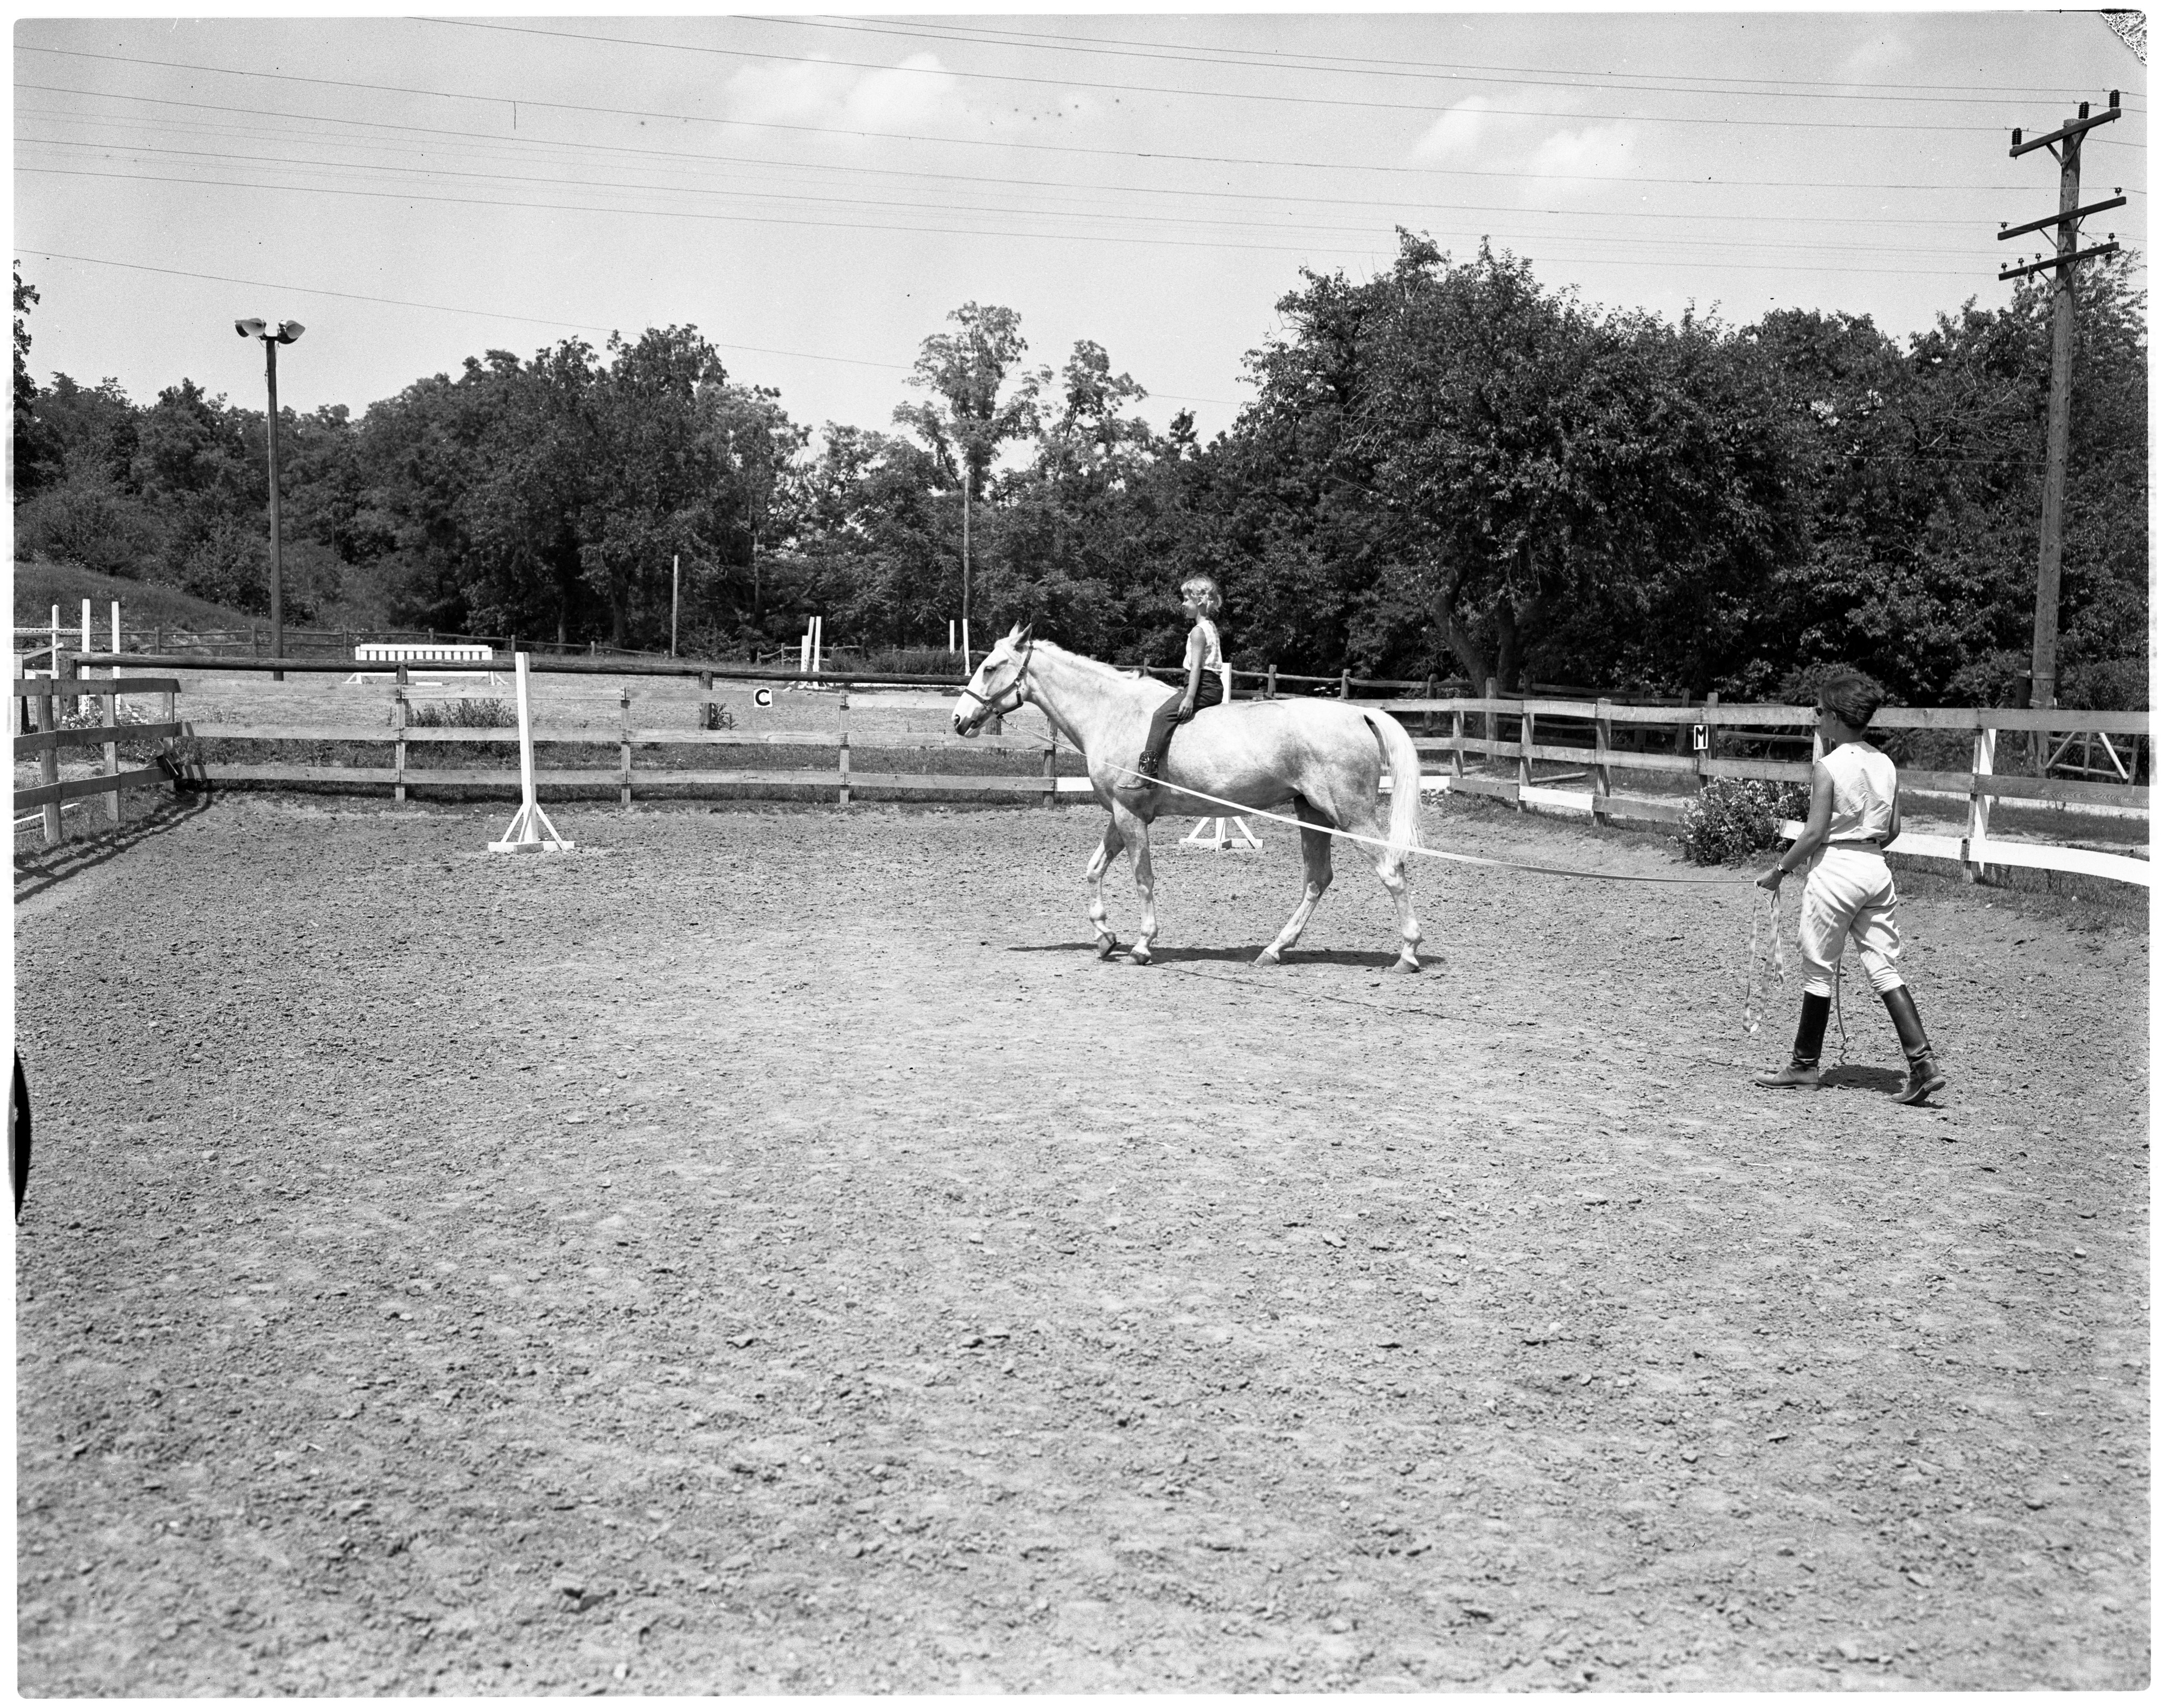 Sarah Kennedy Rides Anne Oakley - Everett's Riding School, July 1964 image